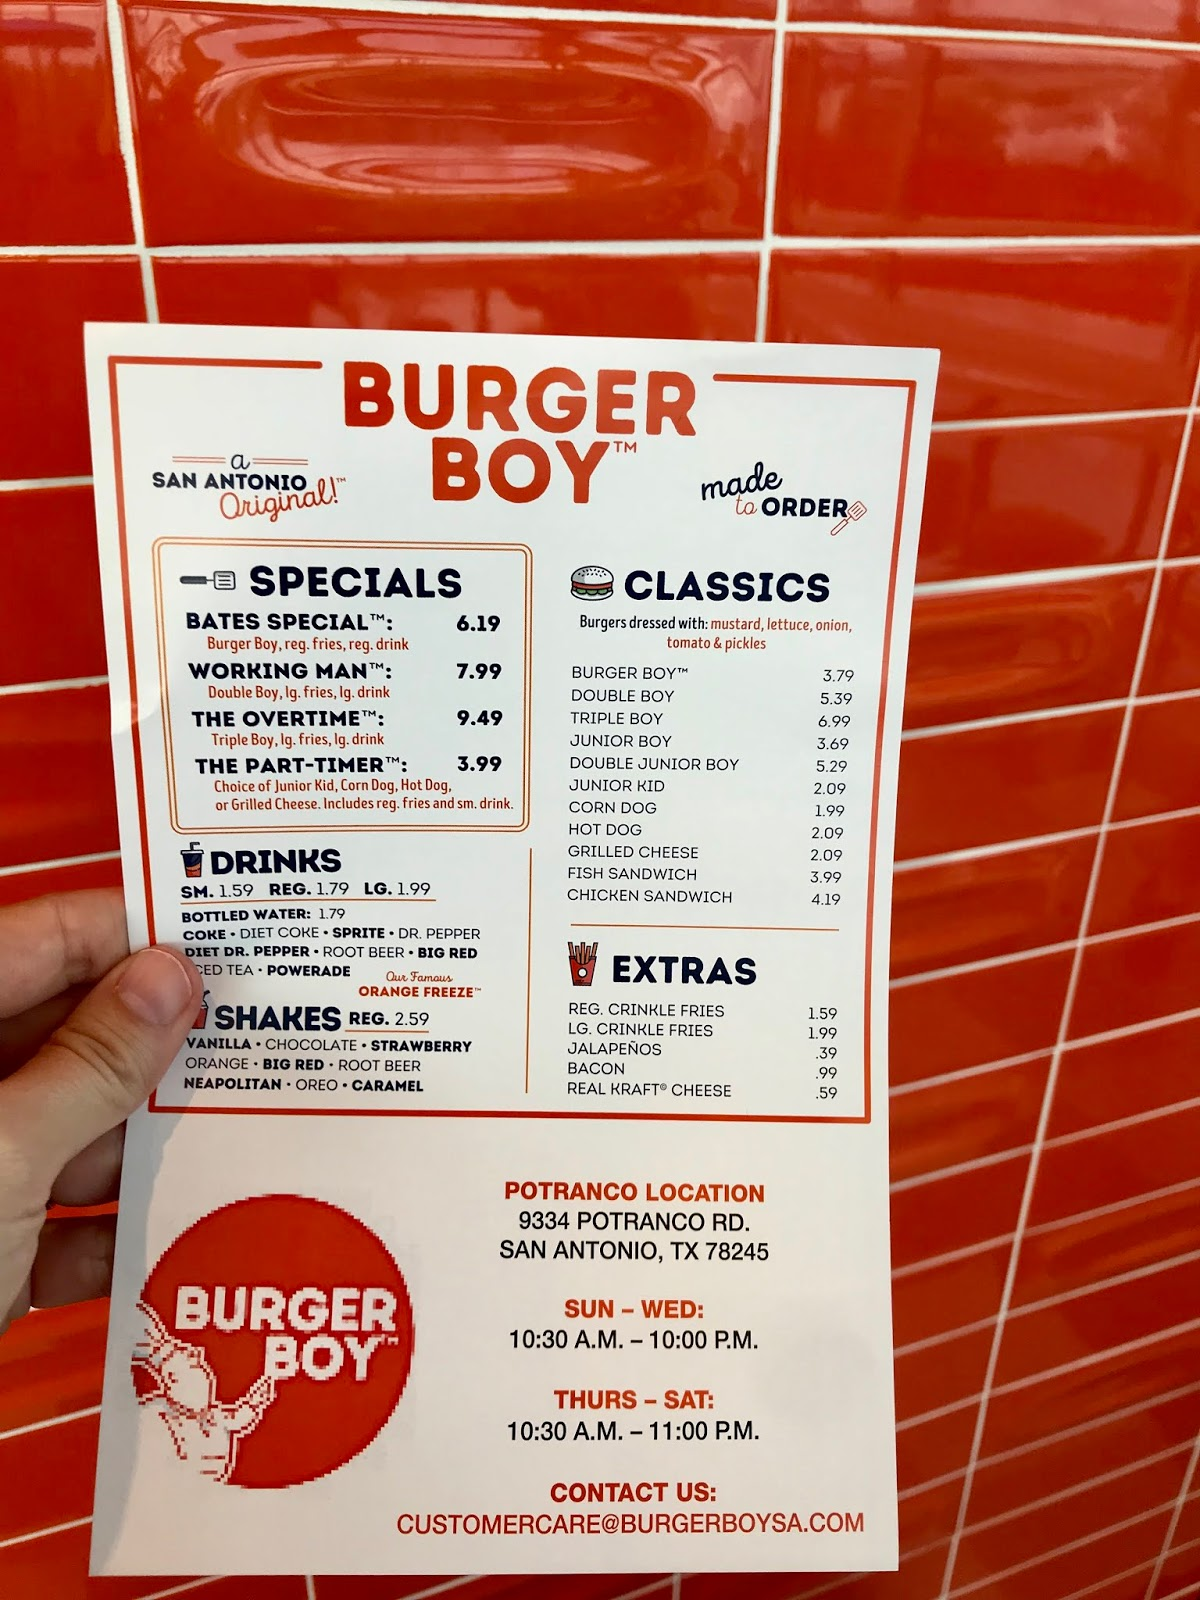 Airing My Laundry One Post At A Time Review Burger Boy In San Antonio Texas Now serving the best breakfast and burgers around town! burger boy in san antonio texas